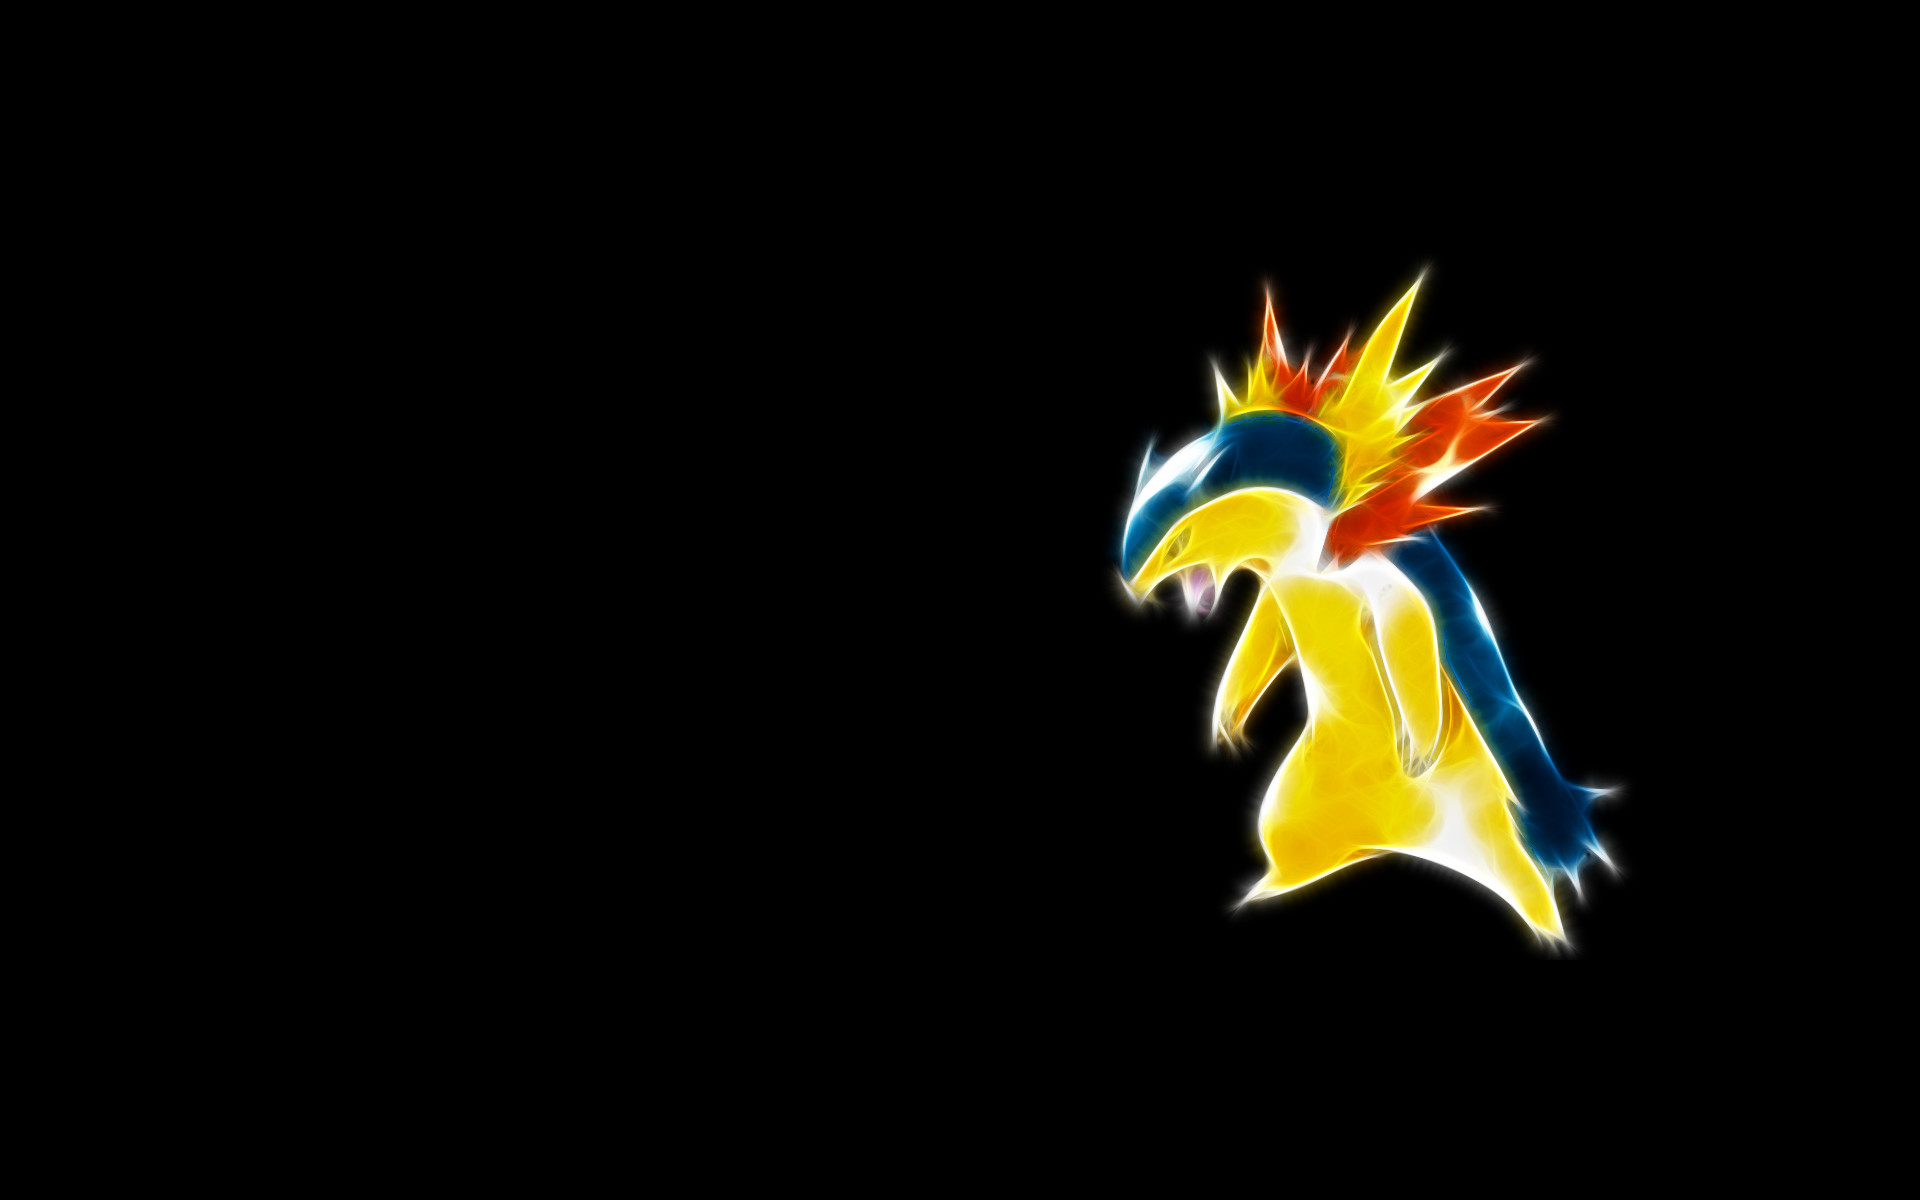 1920x1200 Cool Pokemon Backgrounds - Wallpaper Cave